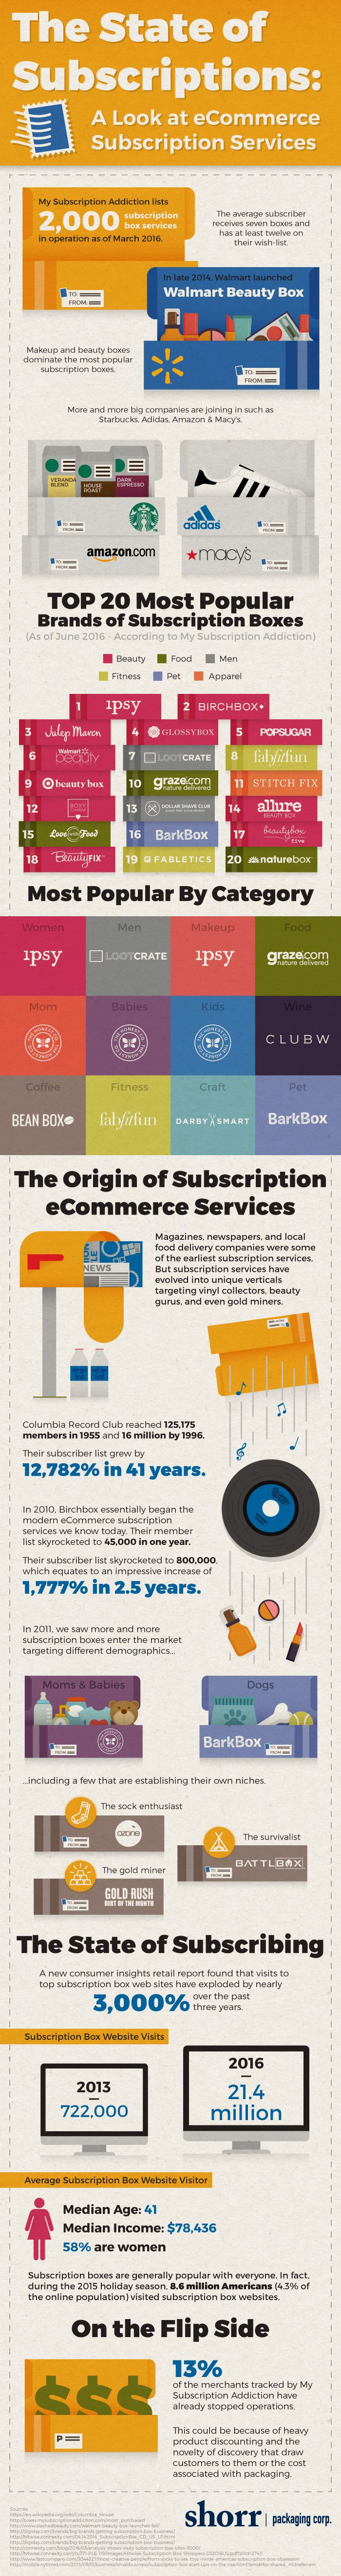 The Rise of Subscription Based Ecommerce Services #Infographic